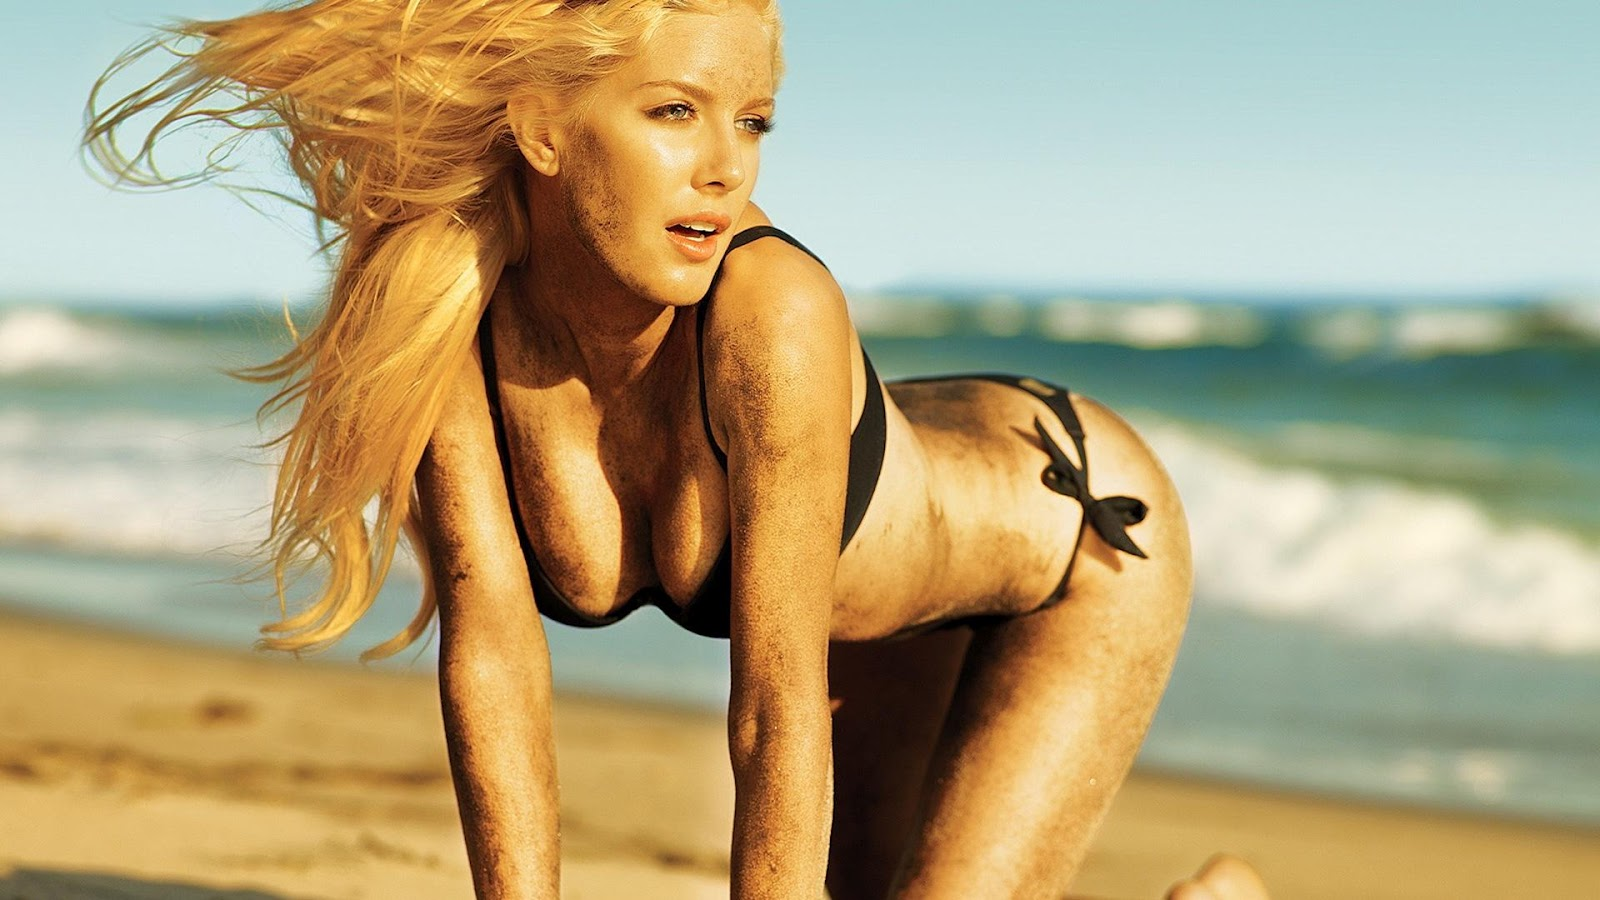 Hot Wallpapers of Hollywood Celebrities